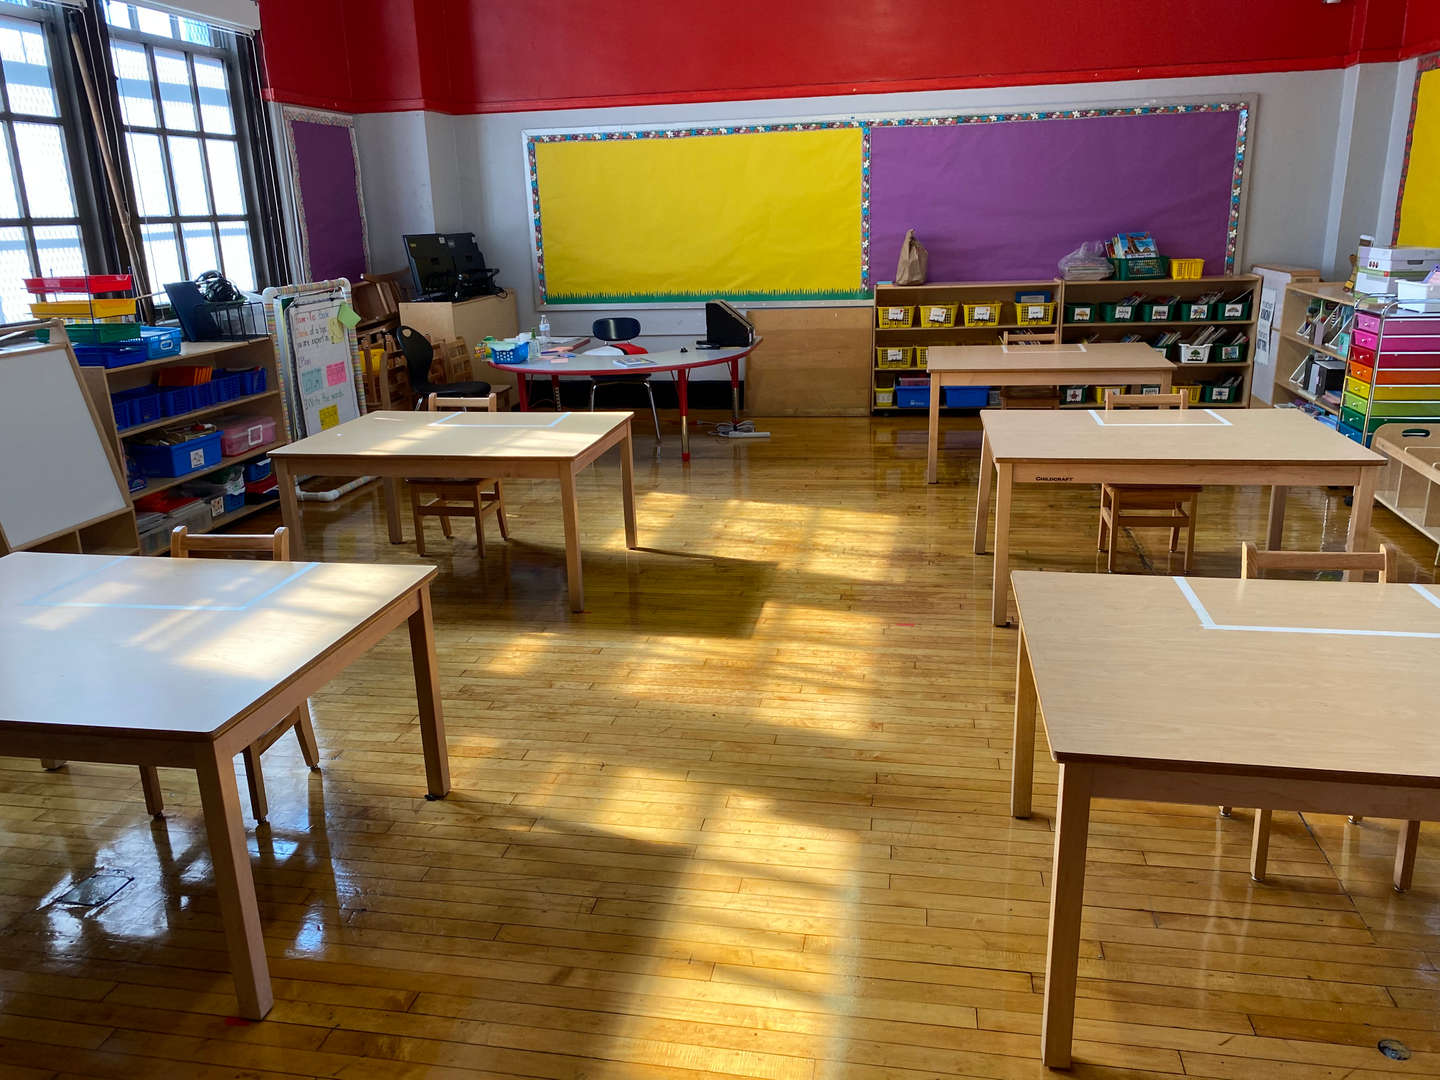 View of a clean classroom with social distancing measures in place.